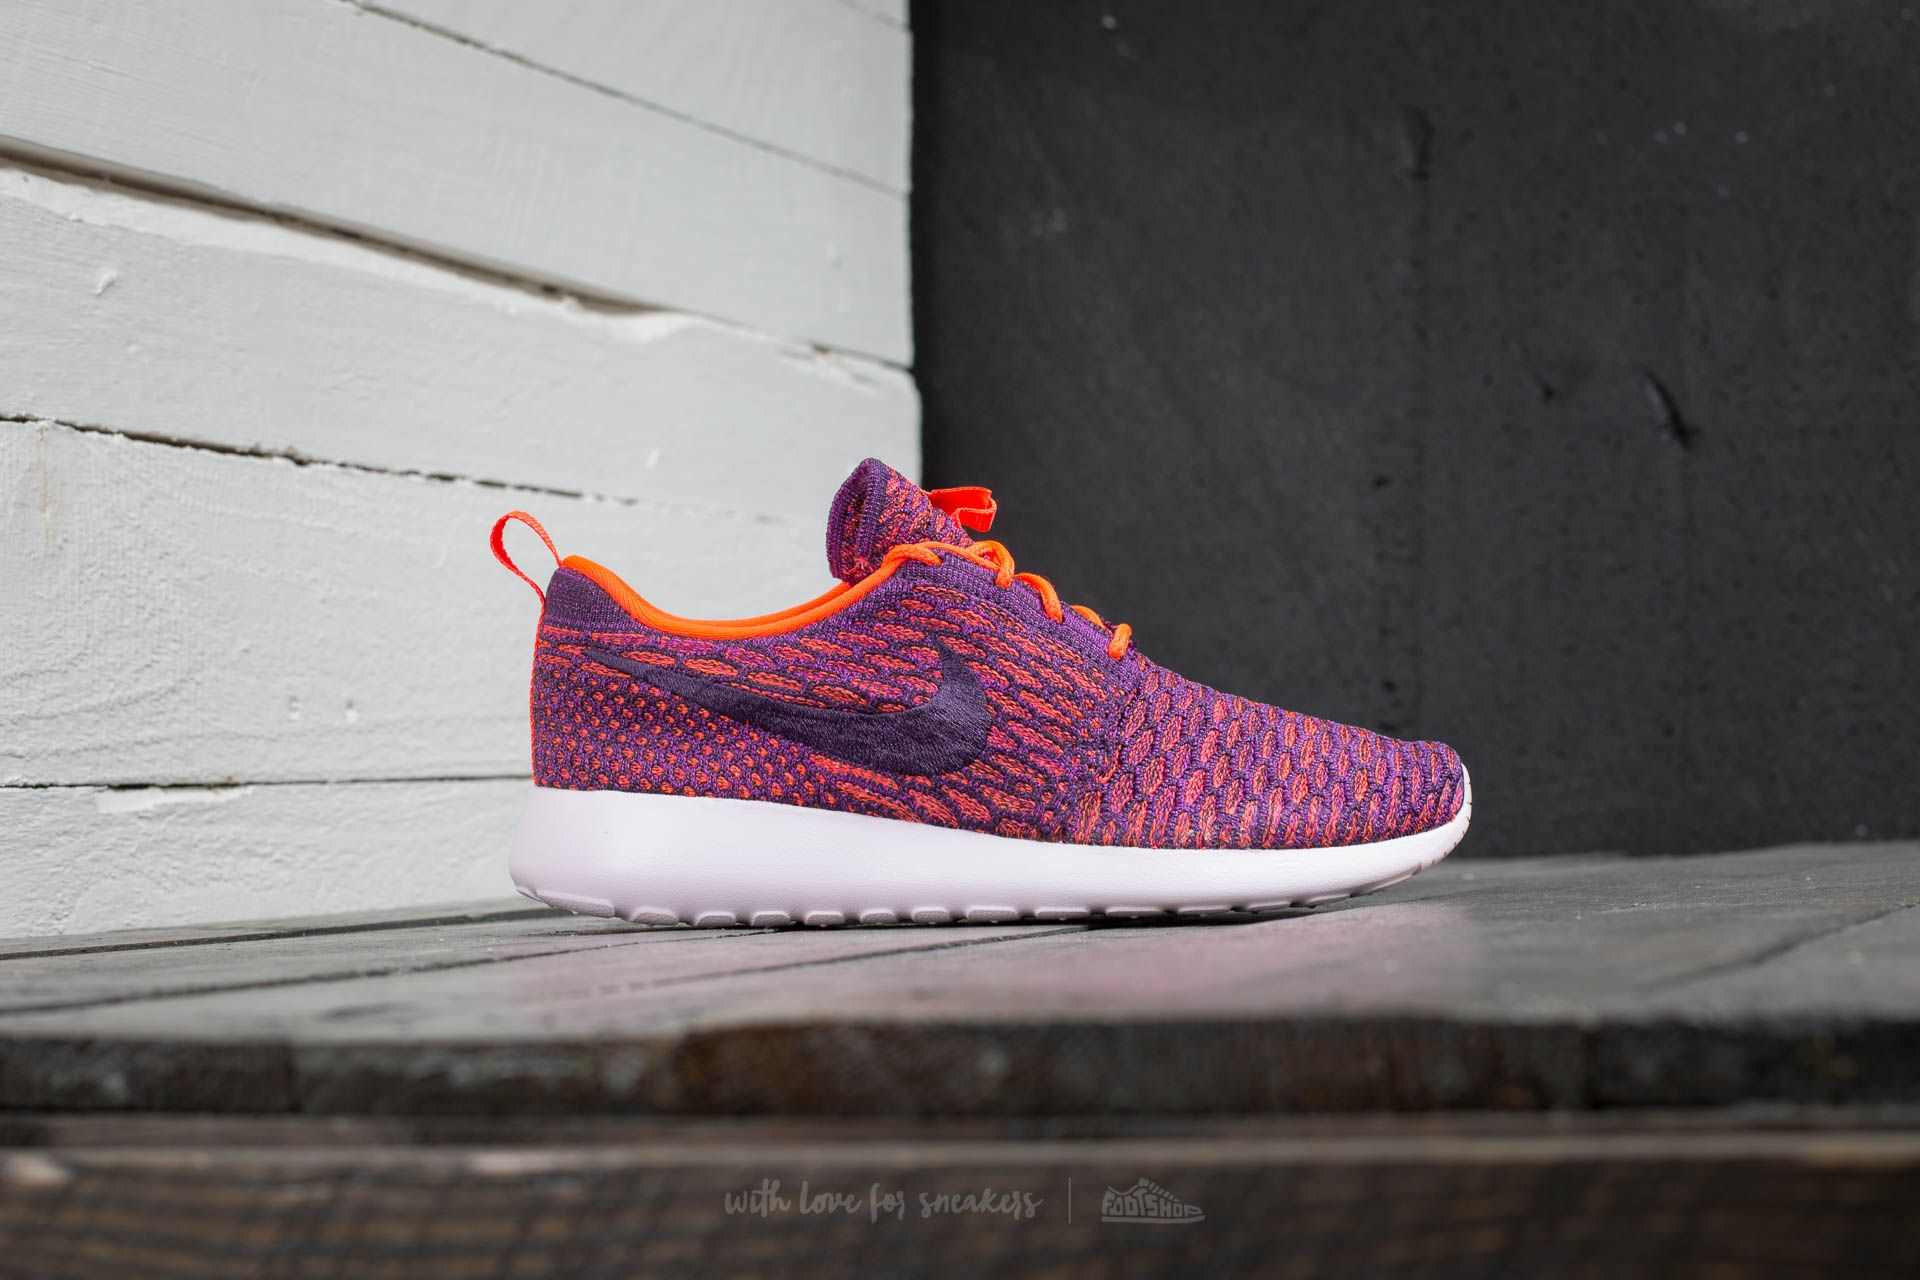 e007d1214dbf1 ... coupon code for nike wmns roshe one flyknit total crimson grnd purple  vvd purple ced76 32ba0